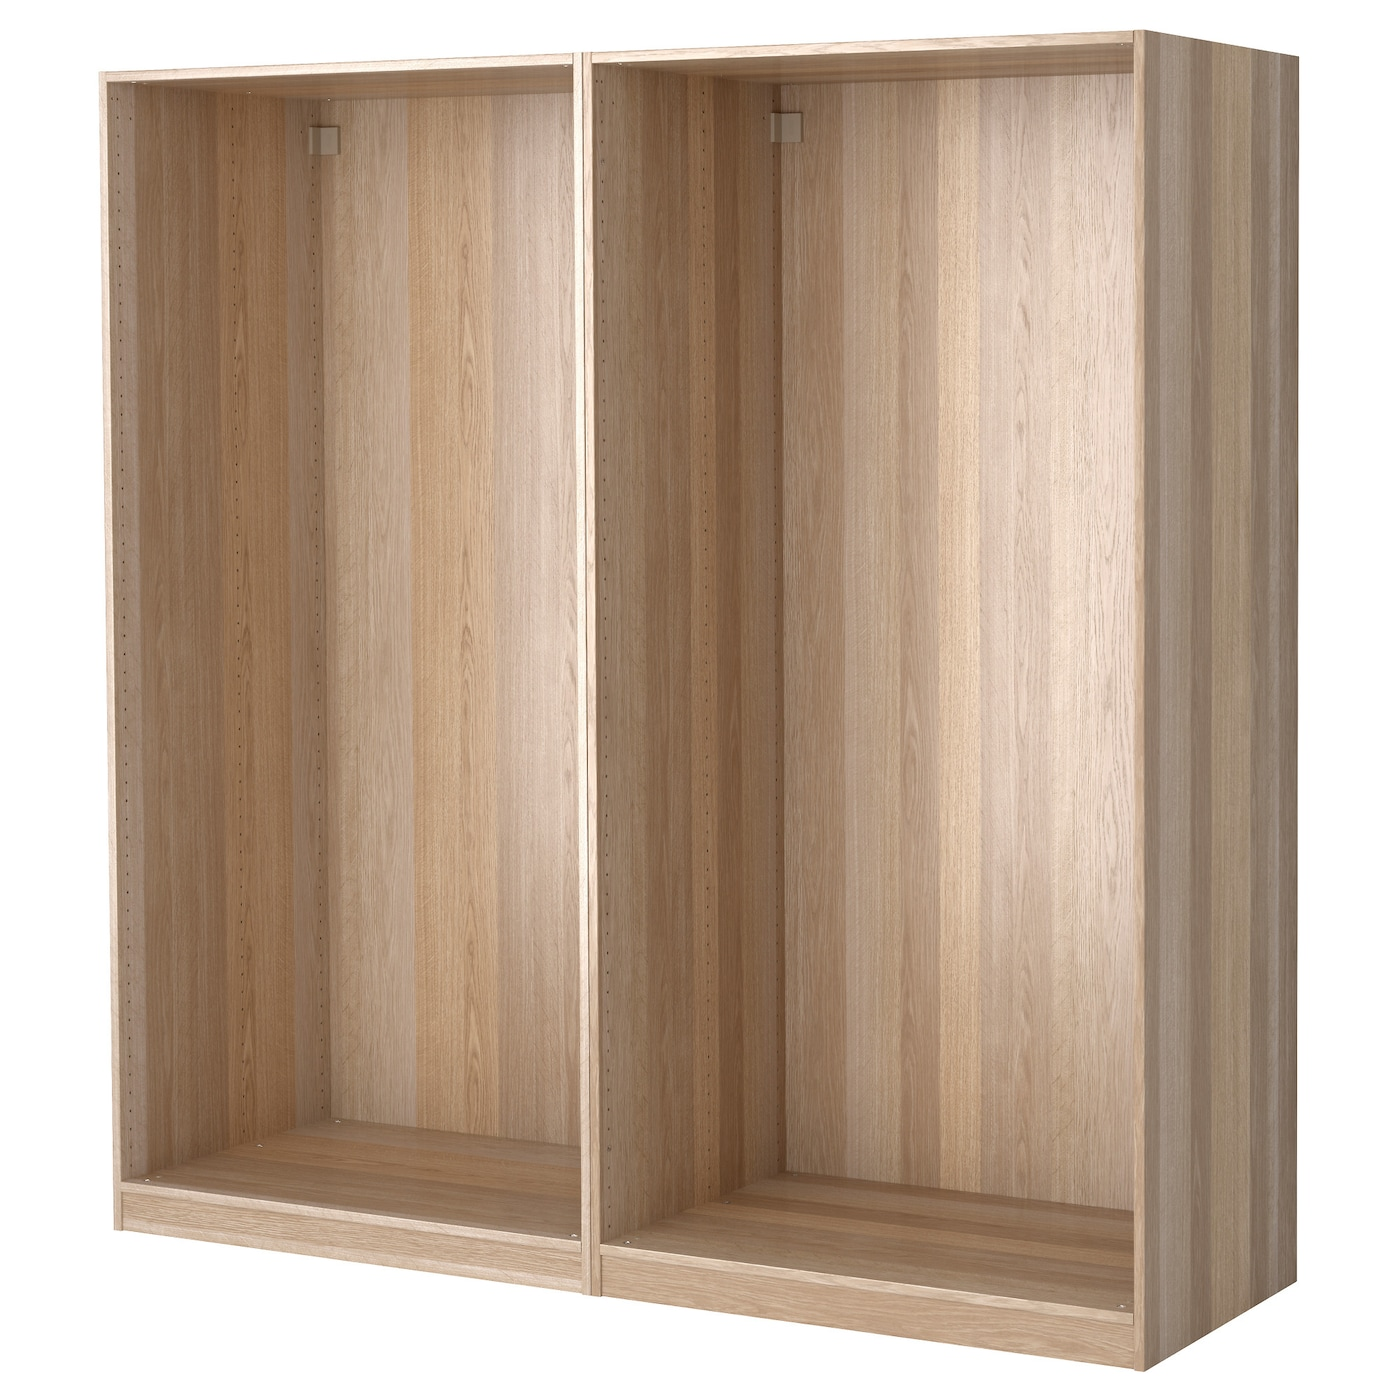 #503520 PAX 2 Wardrobe Frames White Stained Oak 200x58x201 Cm IKEA 945 armoire porte coulissante pin 2000x2000 px @ aertt.com